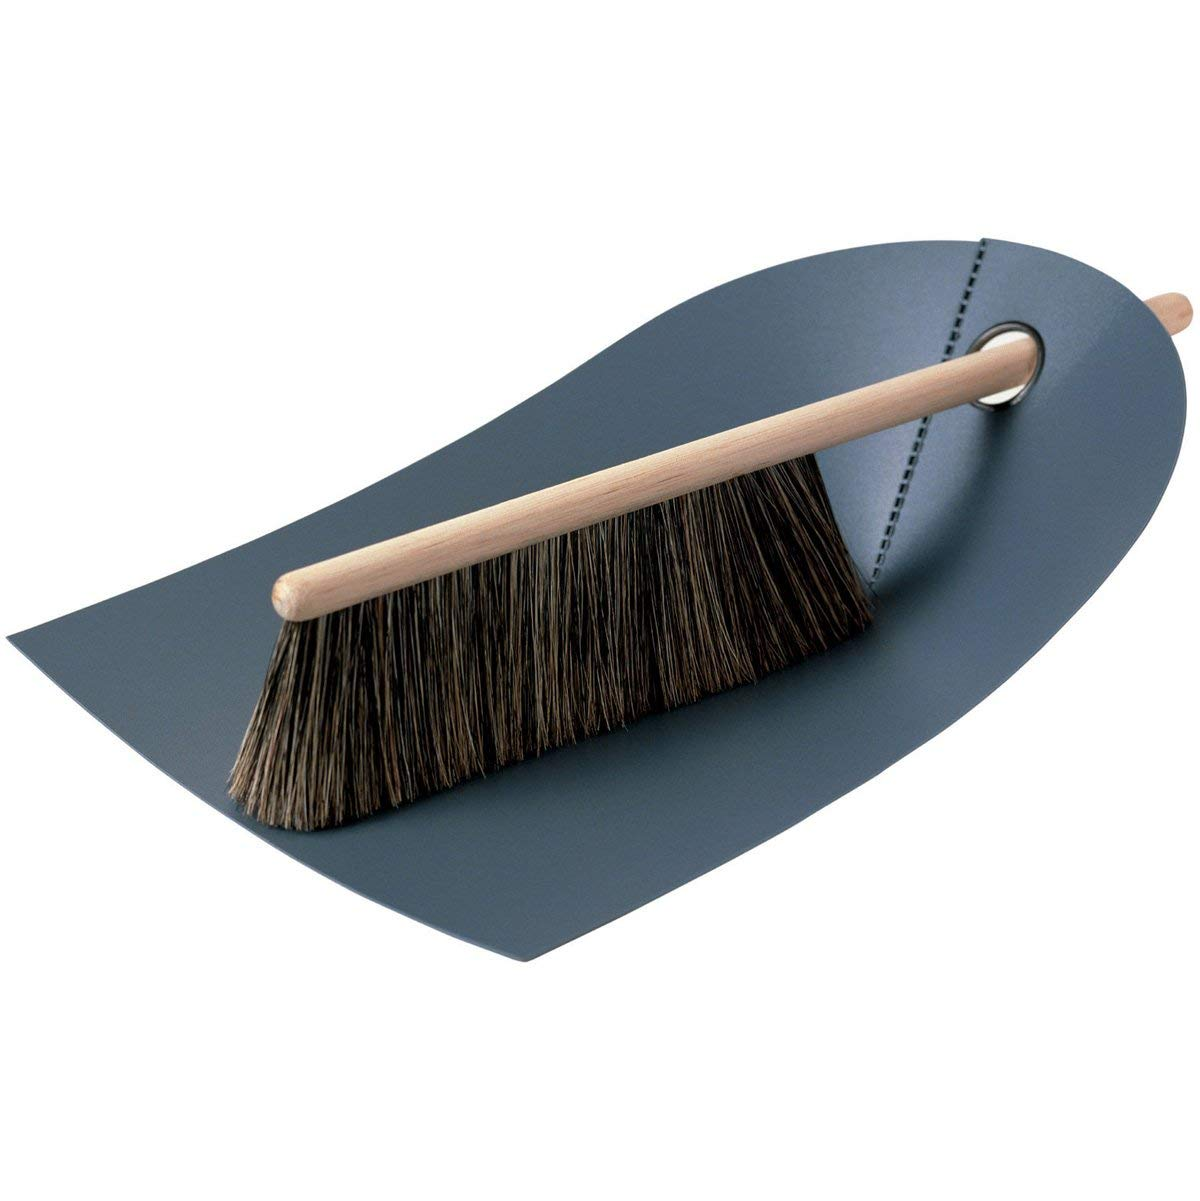 Normann Copenhagen Dustpan & Broom - $26.35